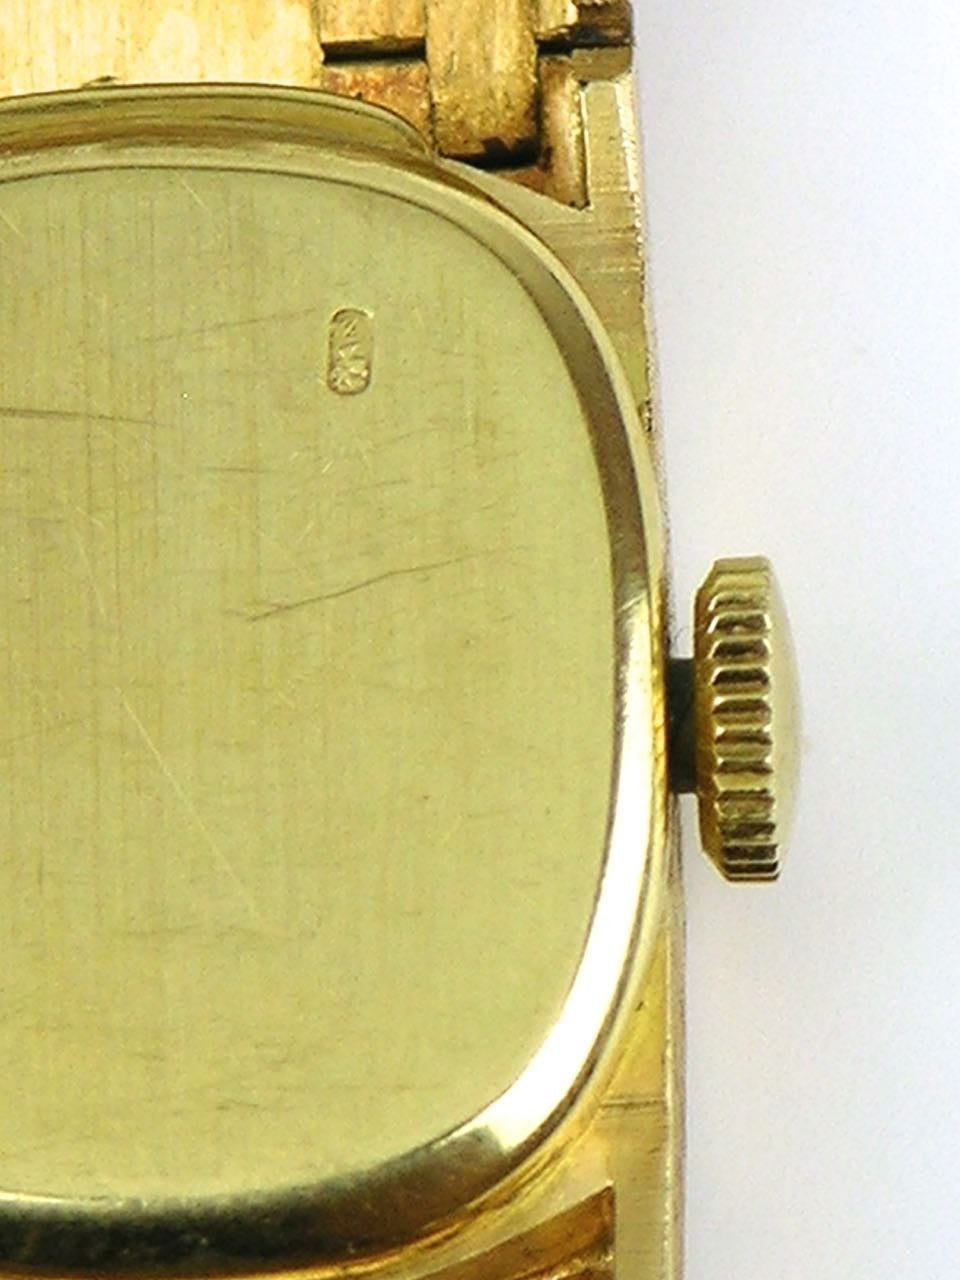 how to place elastic band over watch to protect